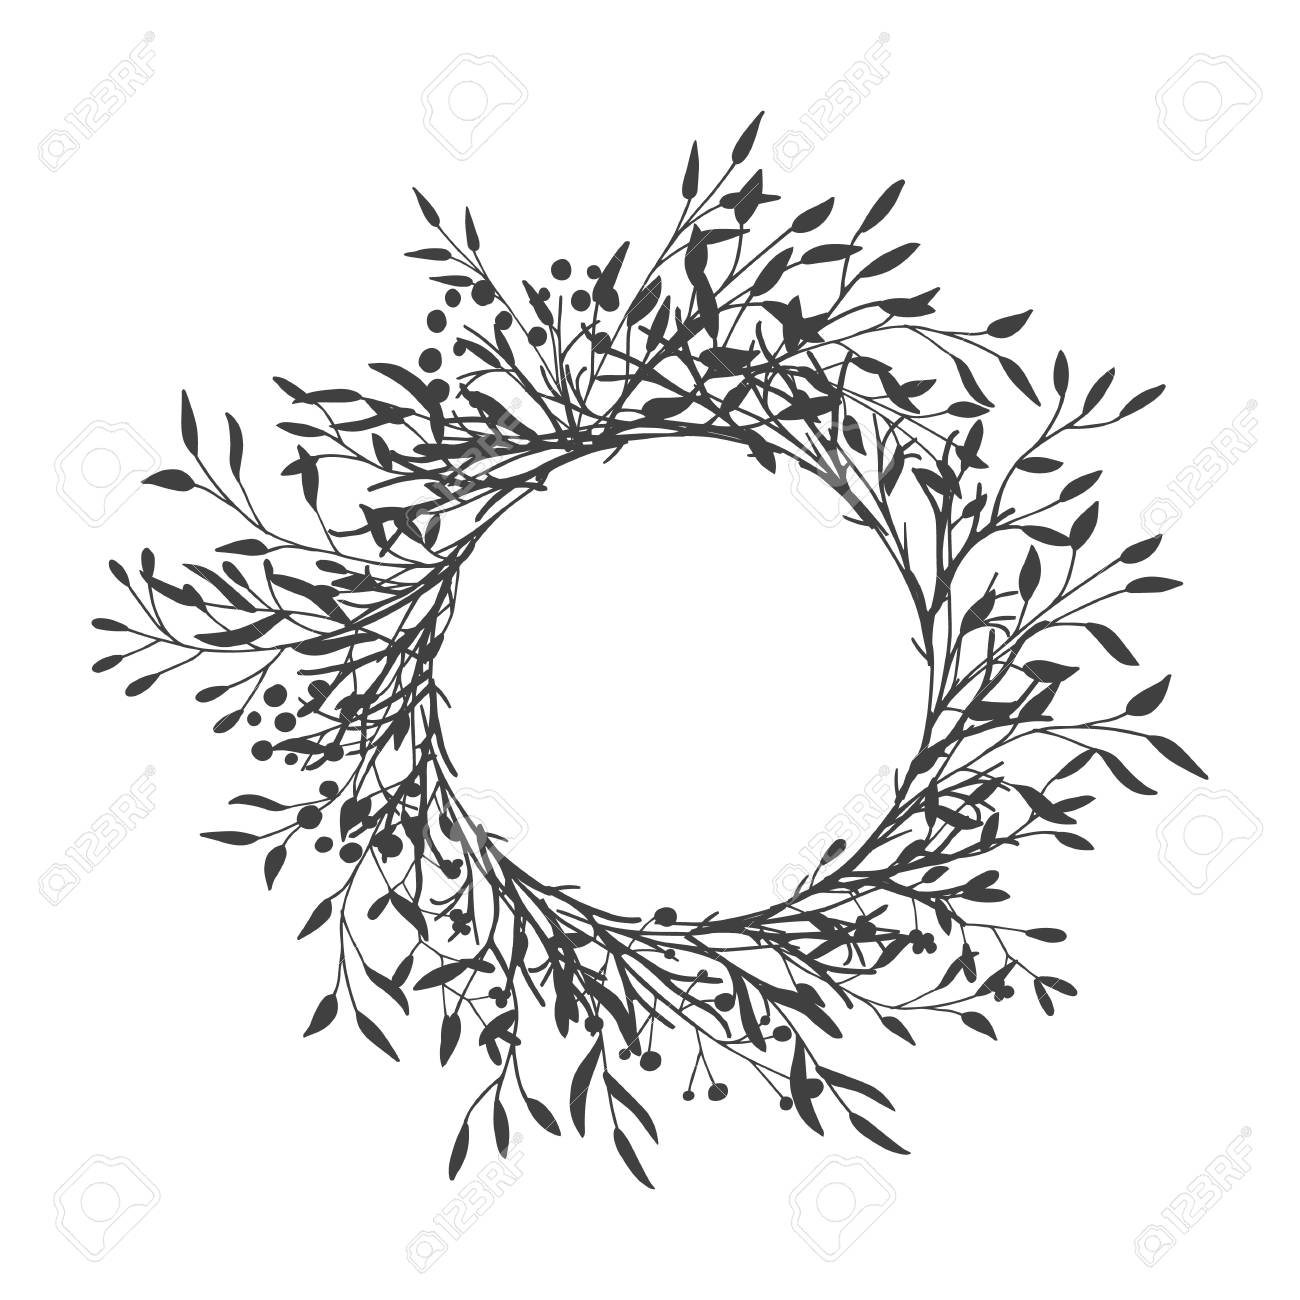 Wreath of leaves, plants, branches and flowers with white background. Hand drawn for cards, invitations, logo, greeting, wedding invite template illustration. - Vector - 123439619